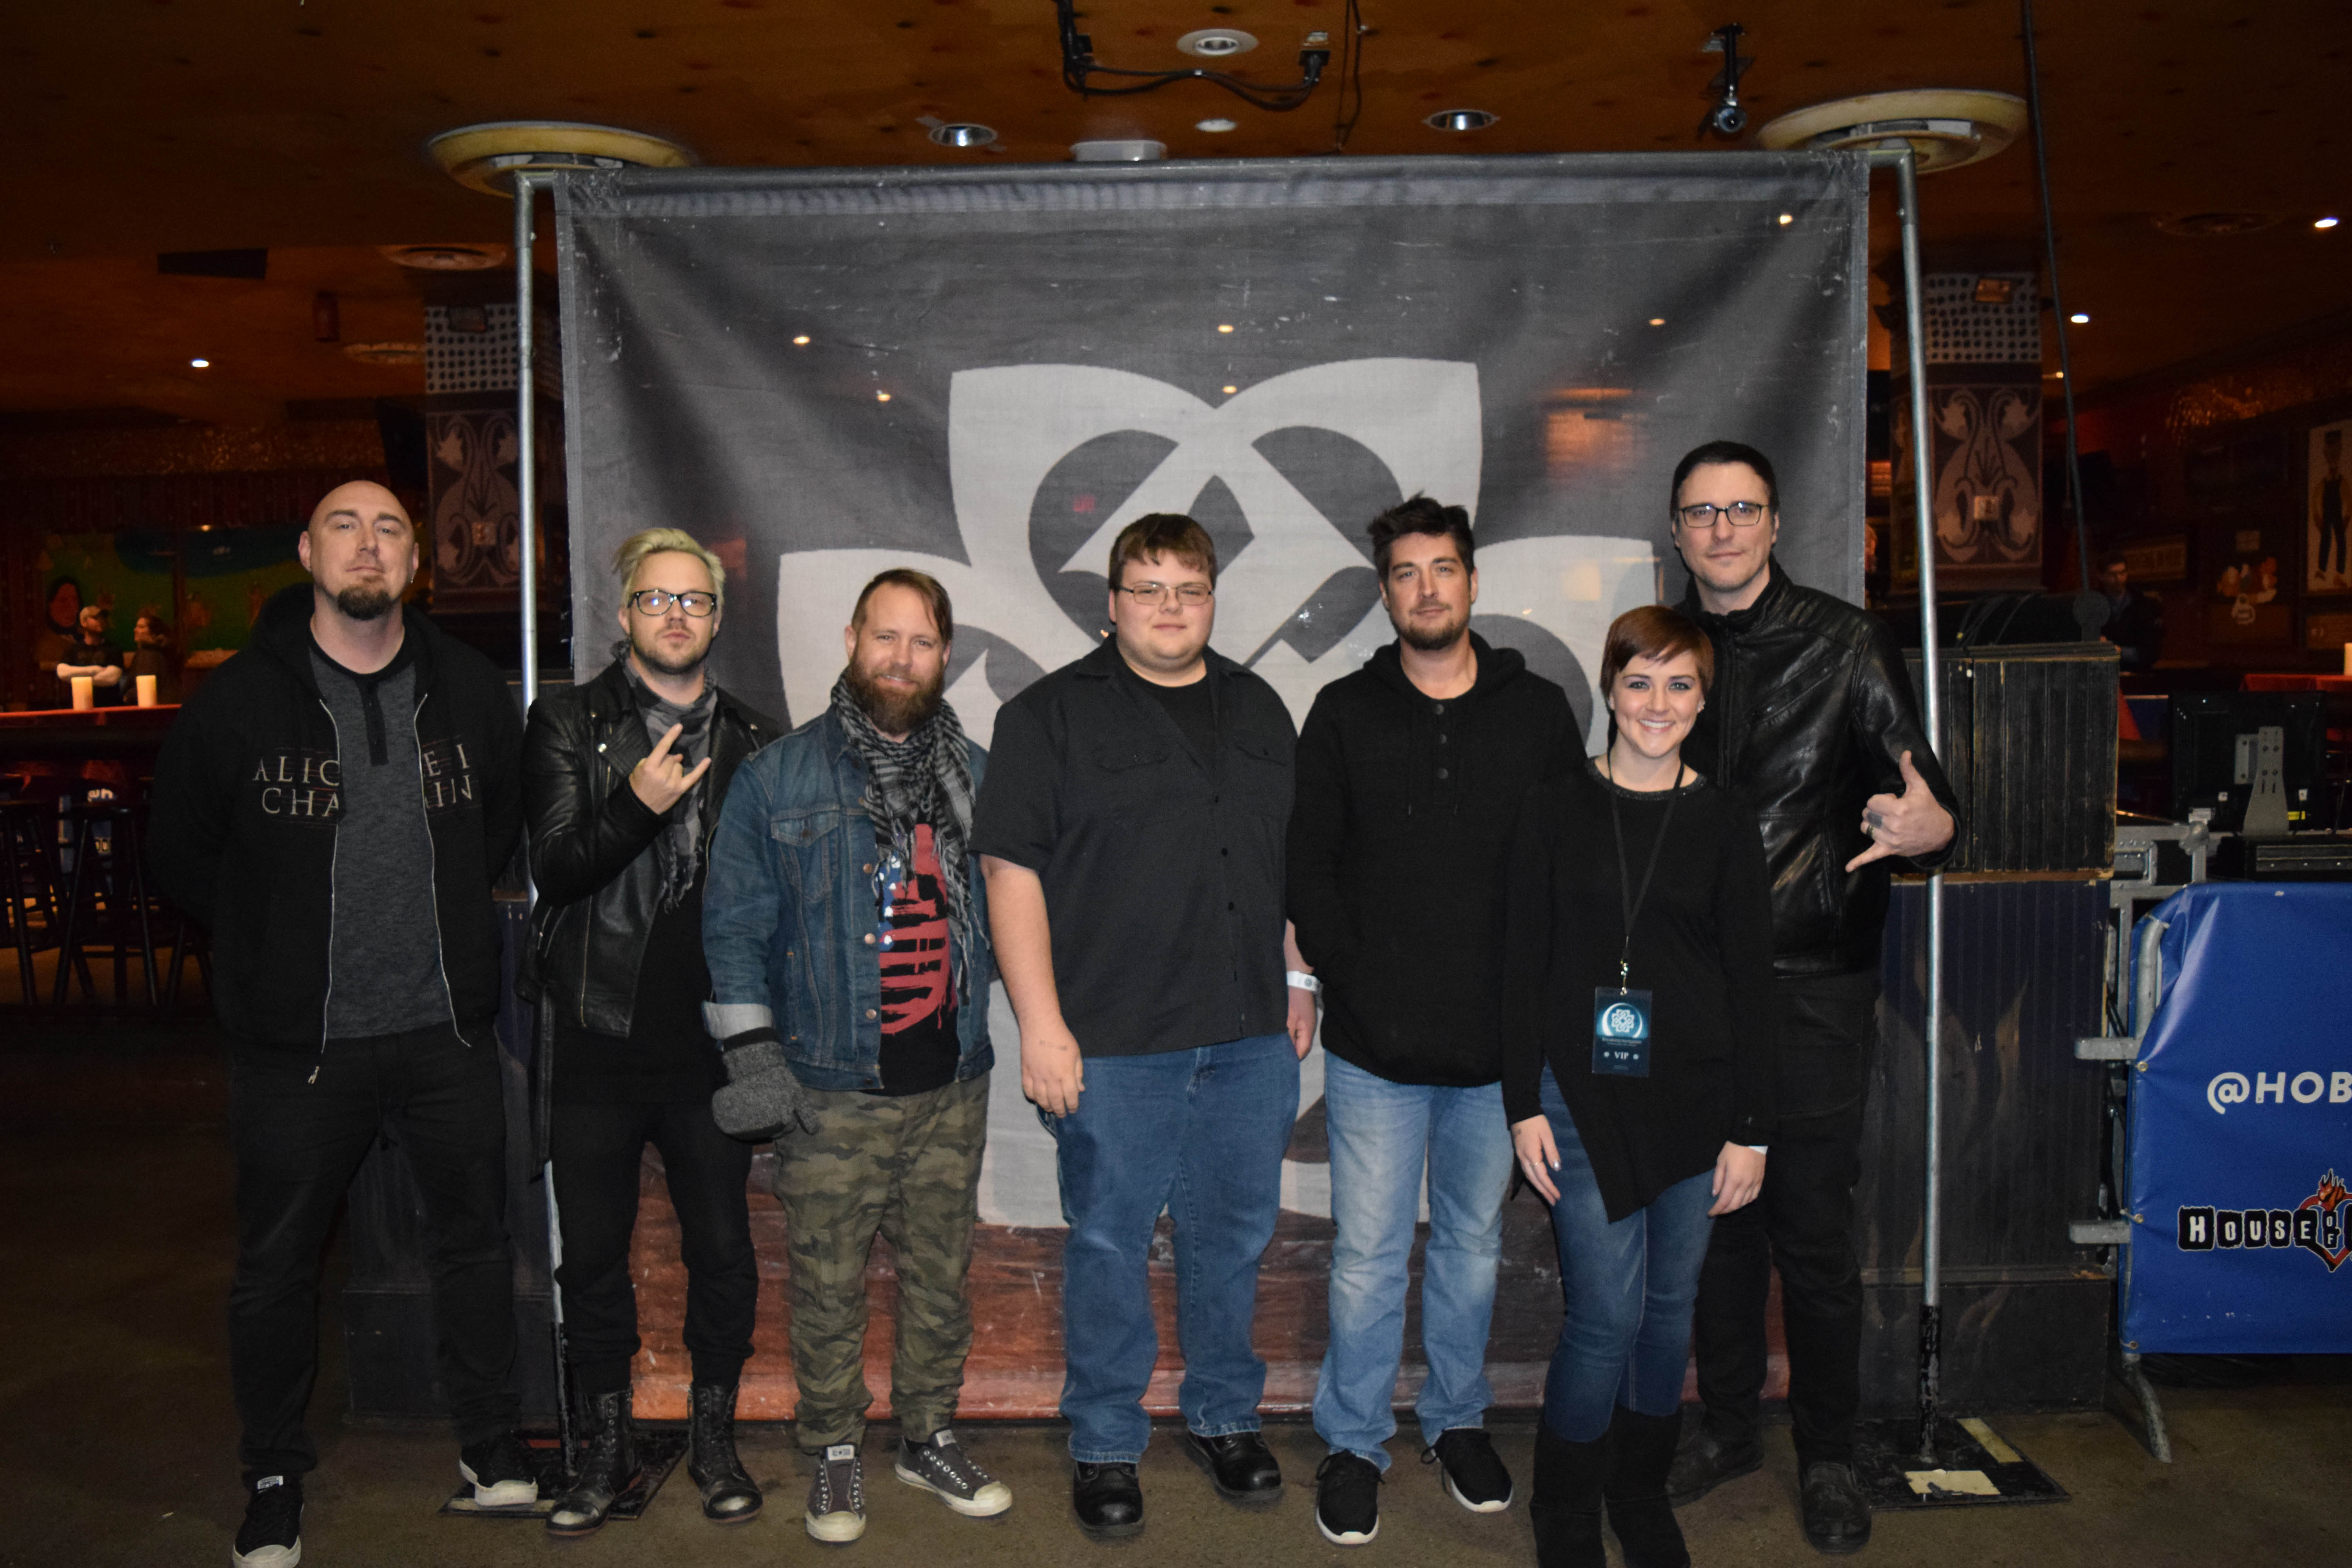 vip meet & greet photos - house of blues - cleveland, oh